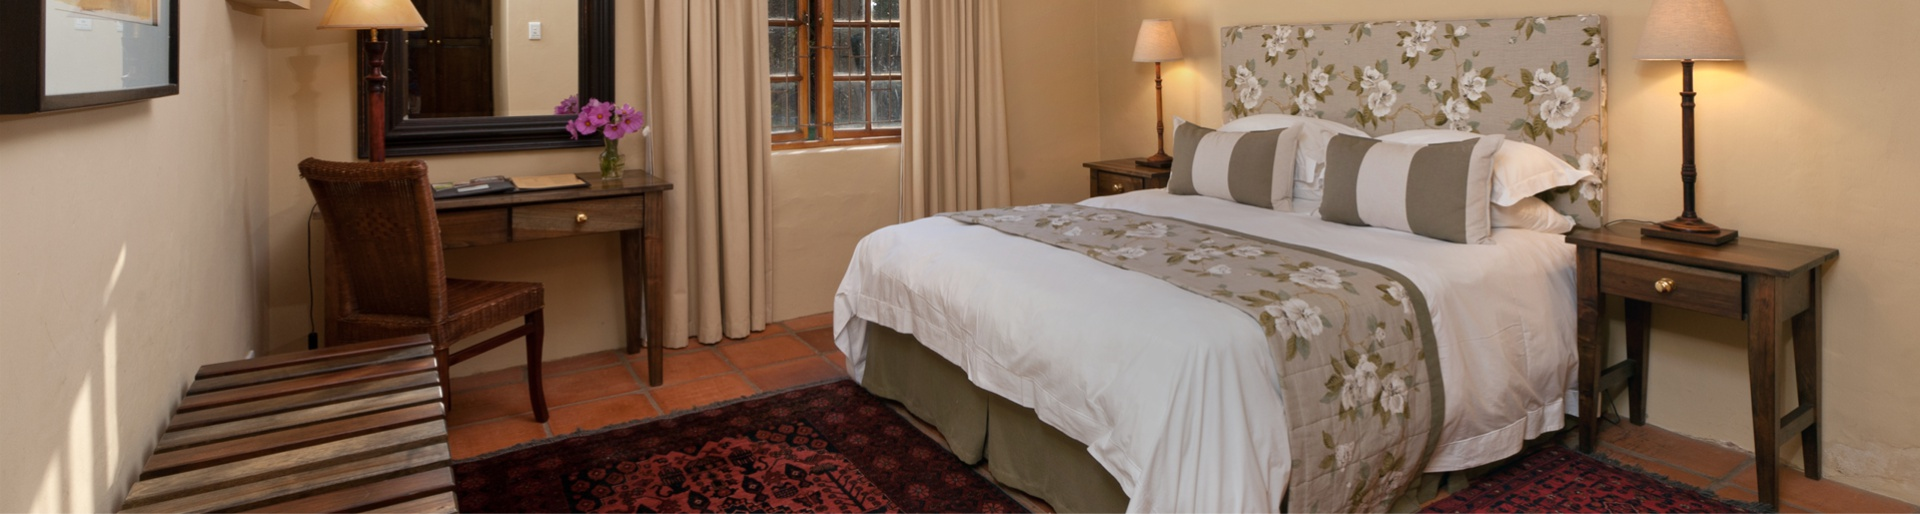 Dedoornkraal Riversdale Vineyard Cottages